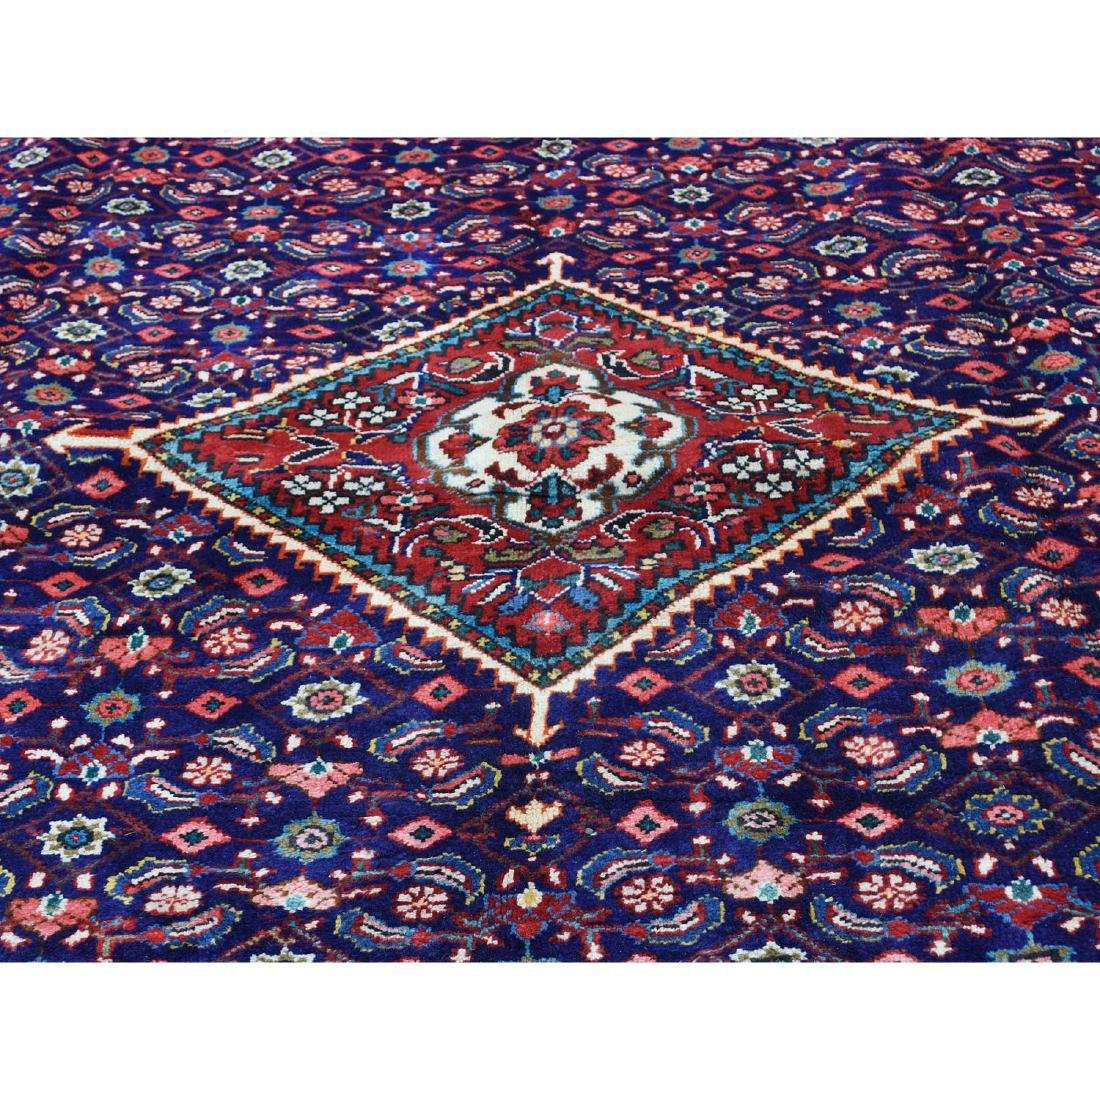 Hand Knotted Persian Mahal Pure Wool Blue Rug 10x13 - 9